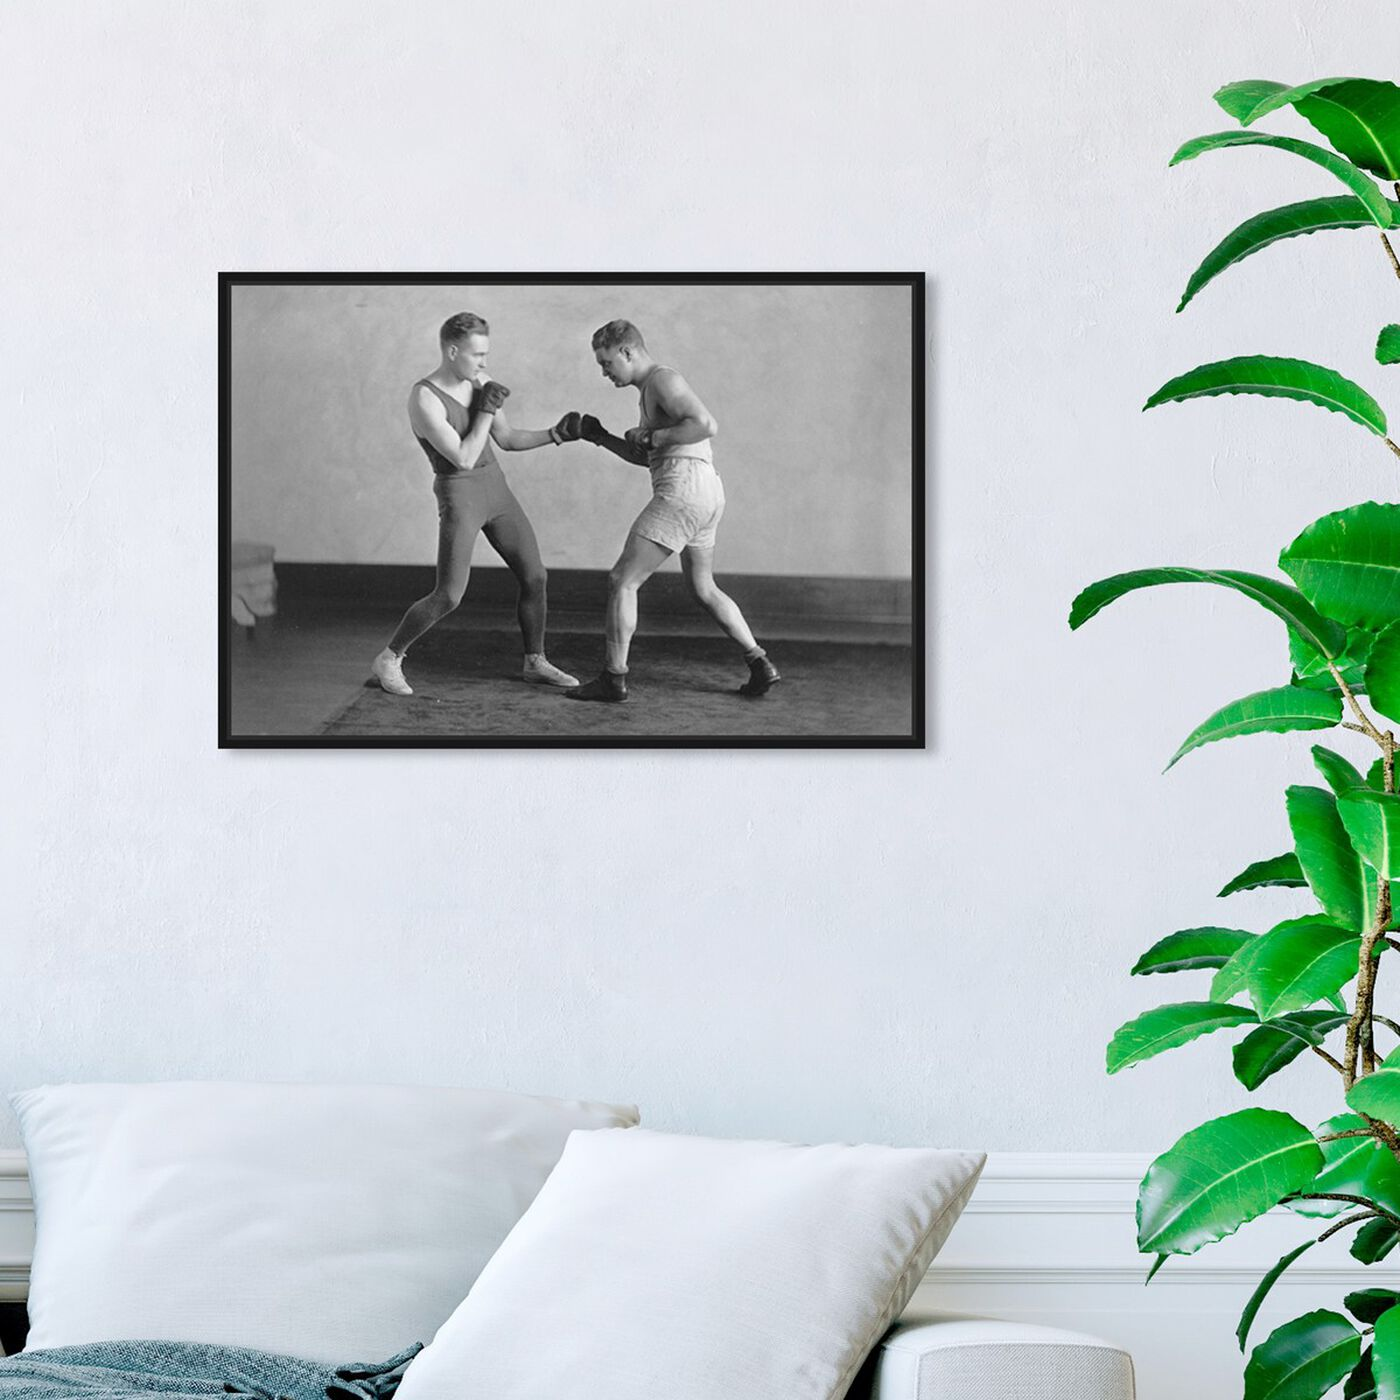 Hanging view of McGill Boxing - The Art Cabinet featuring sports and teams and boxing art.